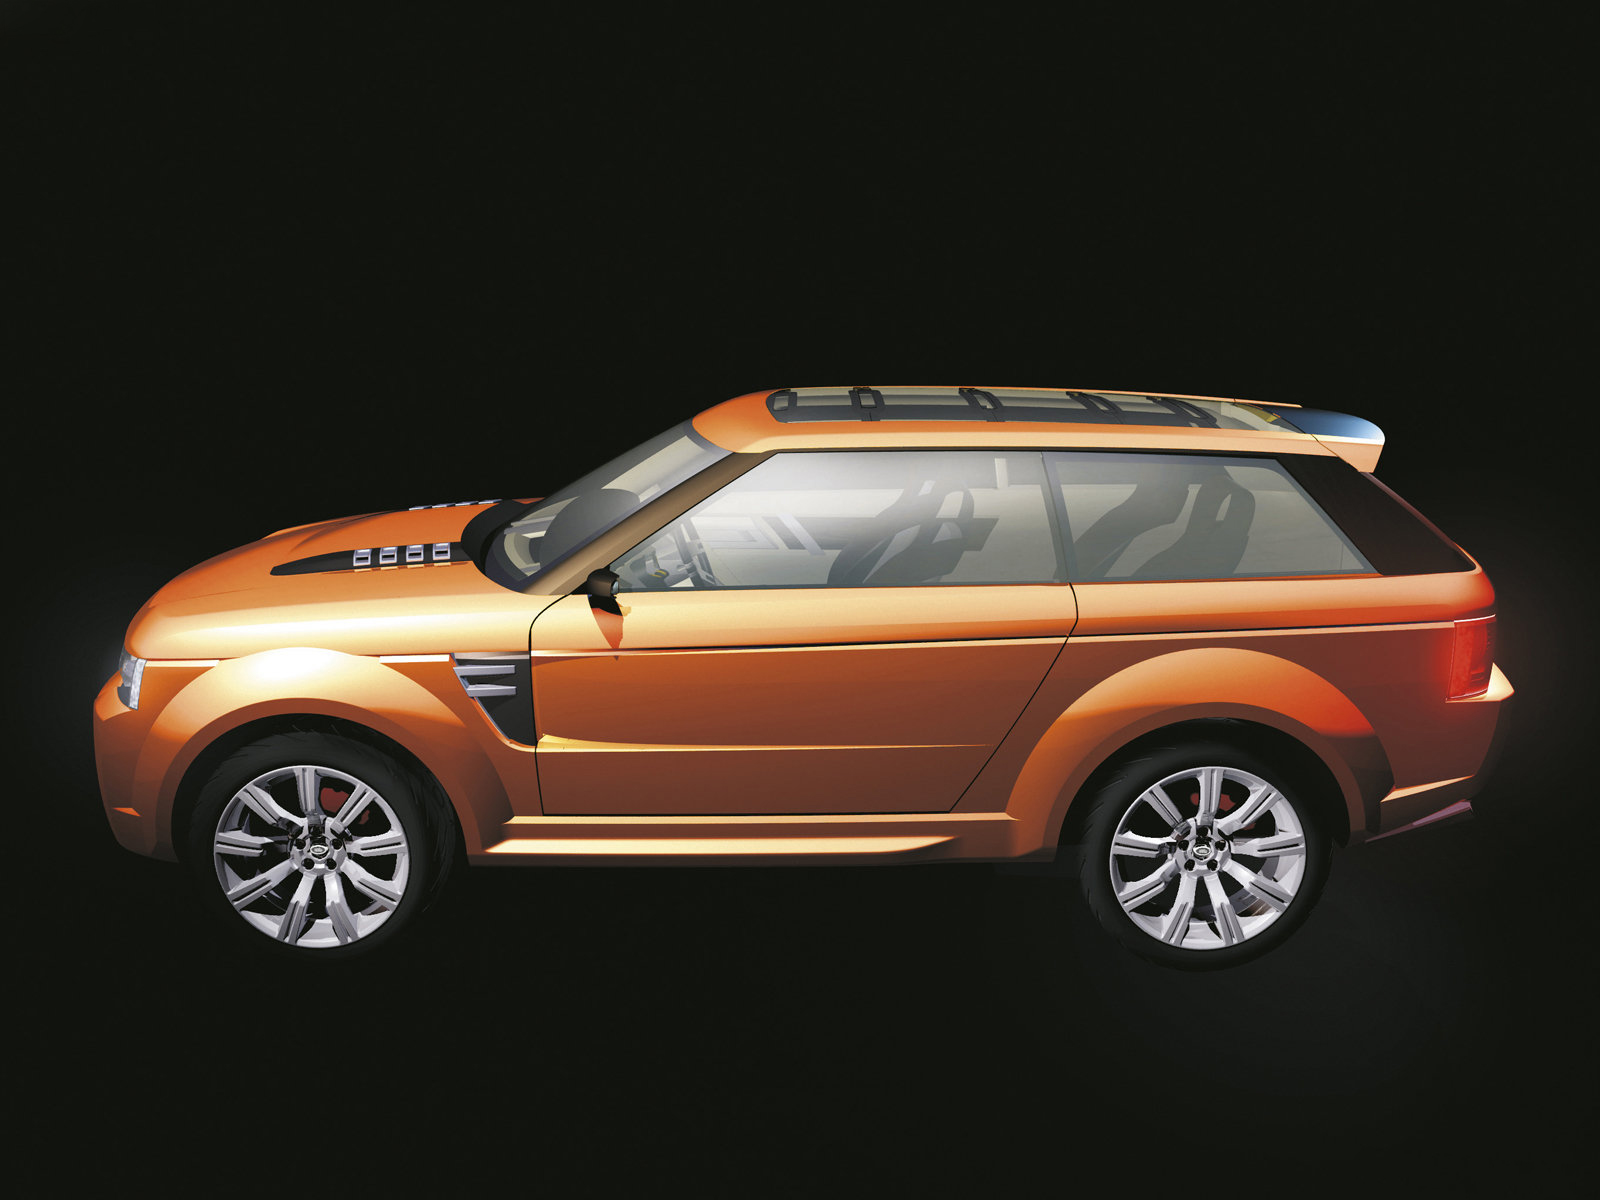 2018 Land Rover Range Stormer Concept photo - 5